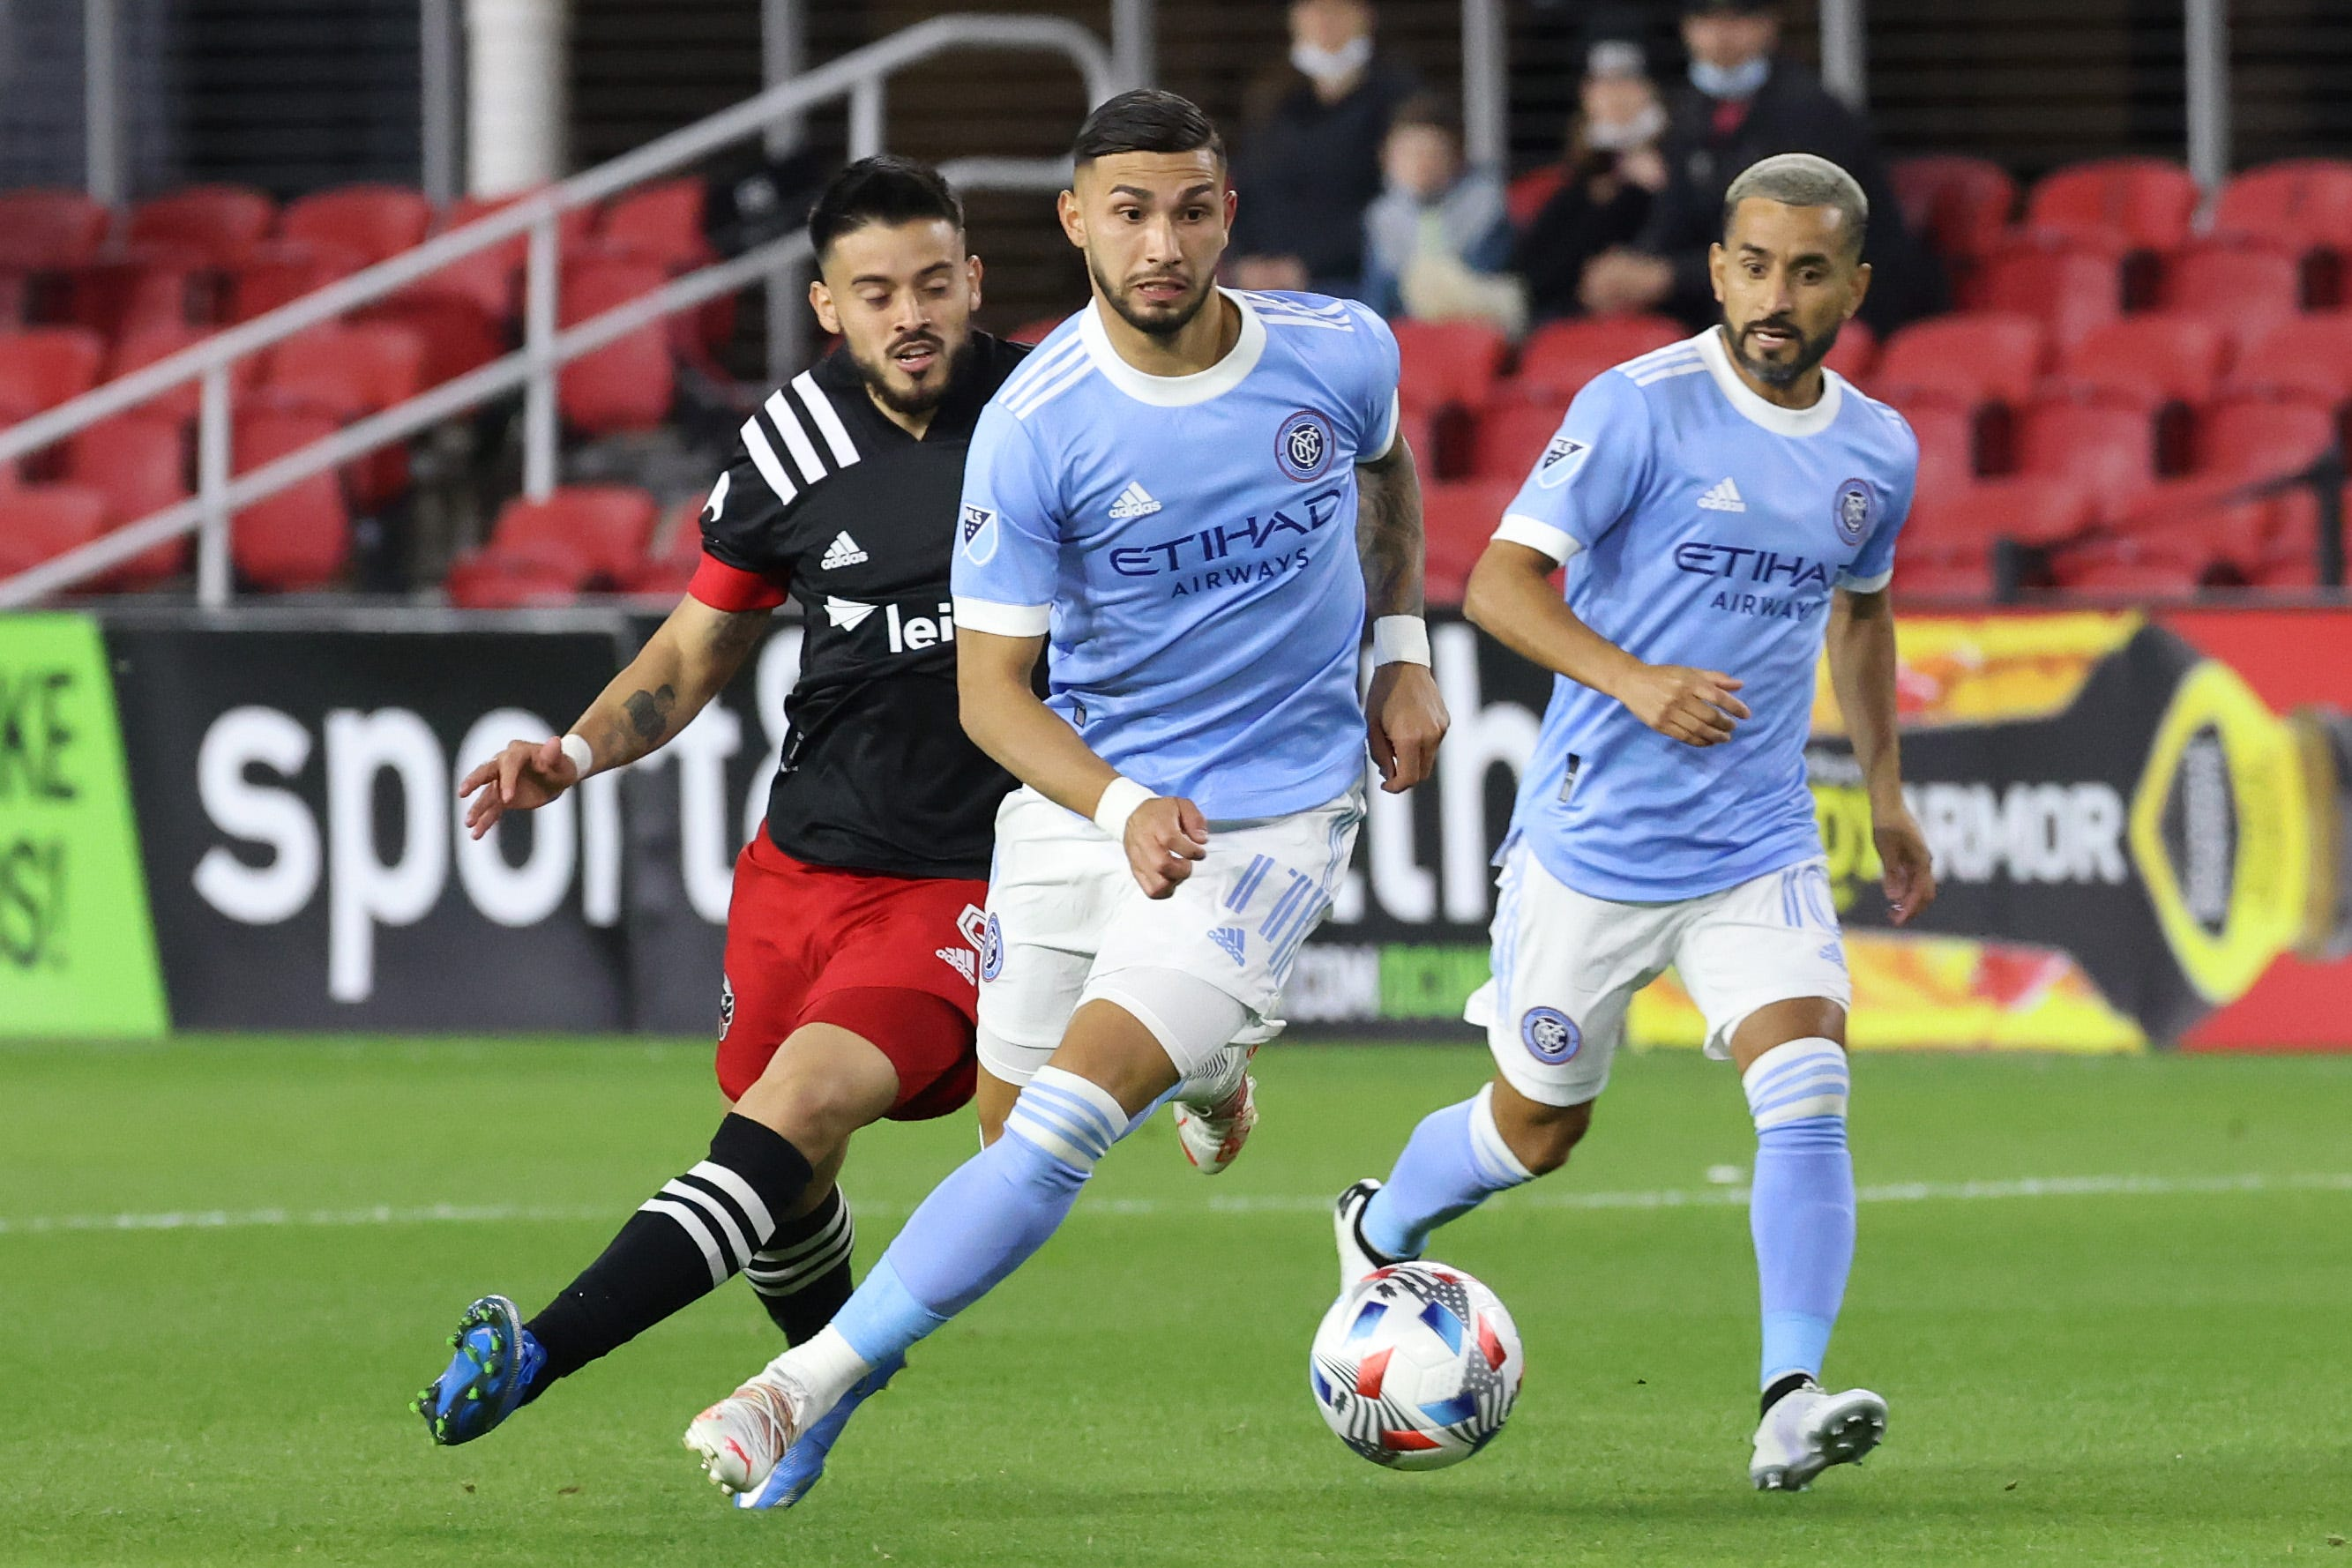 MLS weekend preview: Soccer in the South is back with Atlanta United vs. Nashville SC. Elsewhere, LAFC hosts NYCFC.